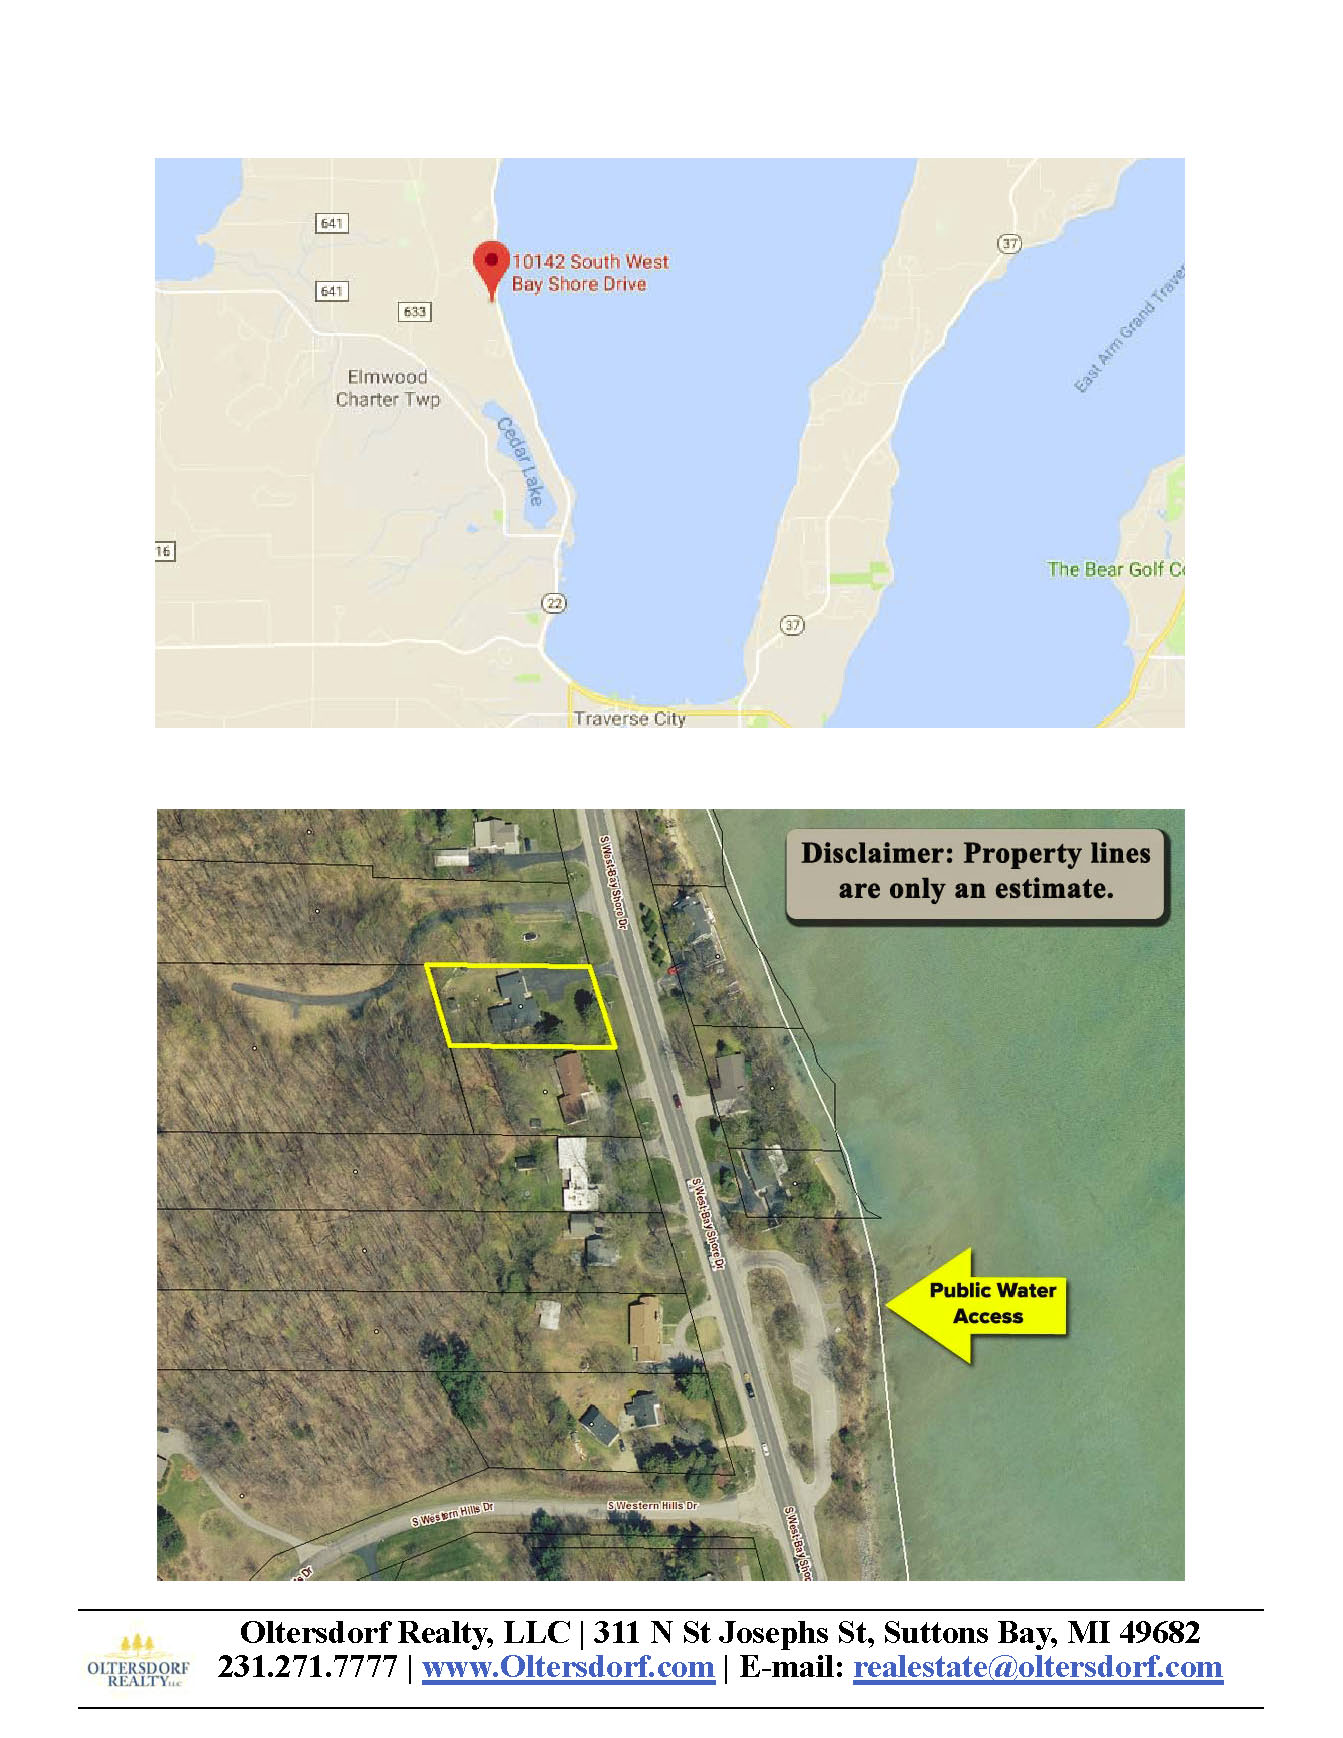 10142 S West Bay Shore Drive, Traverse City, MI - For sale by Oltersdorf Realty LLC - Marketing Packet (9).jpg